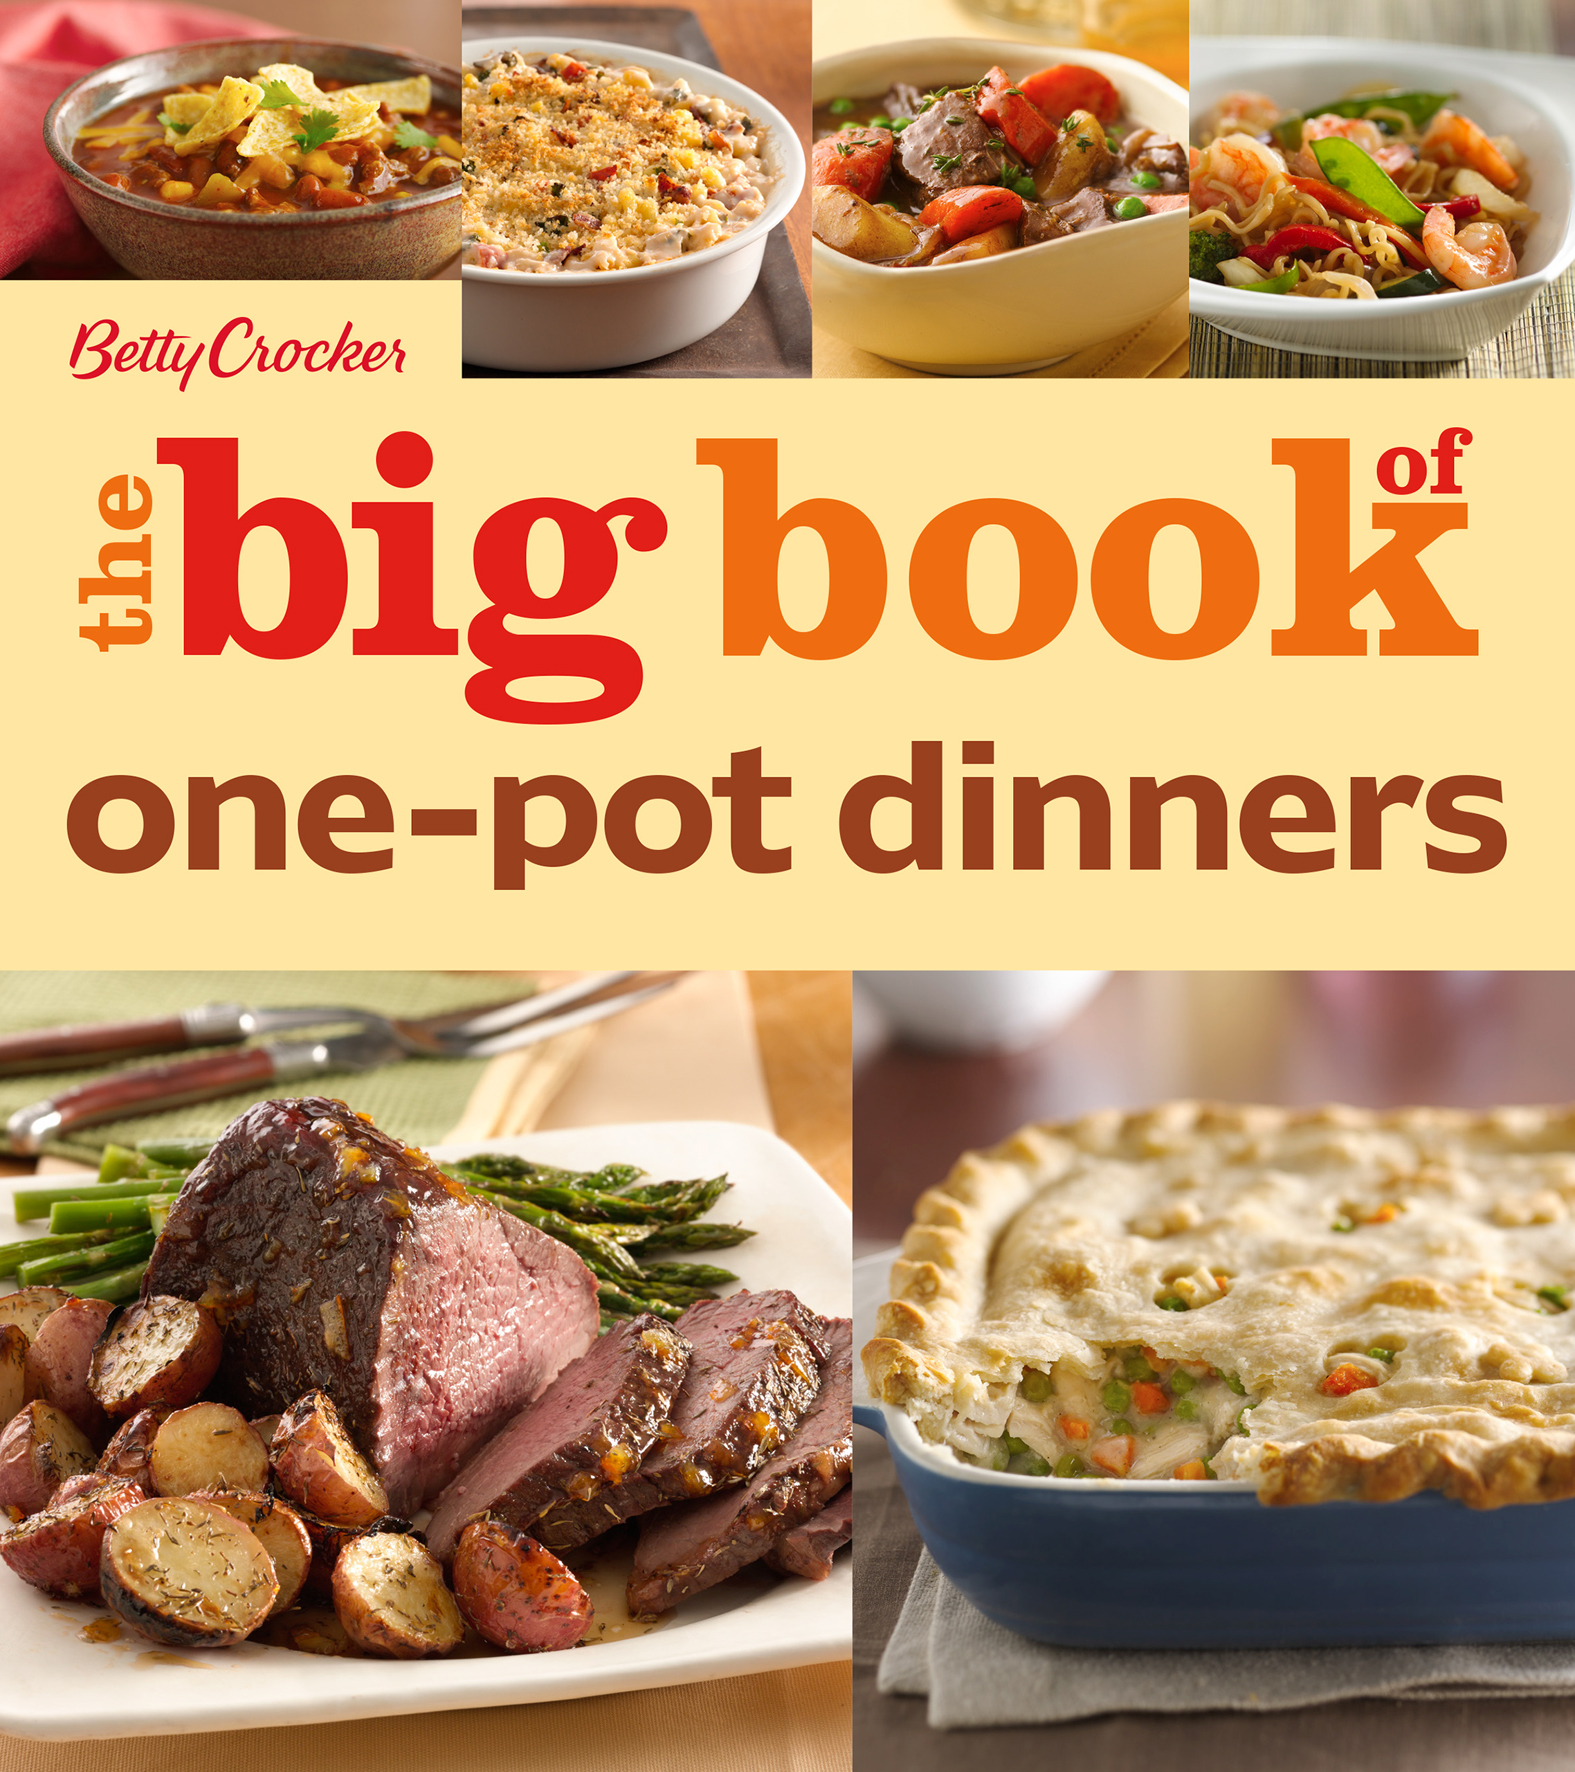 Betty Crocker The Big Book of One-Pot Dinners